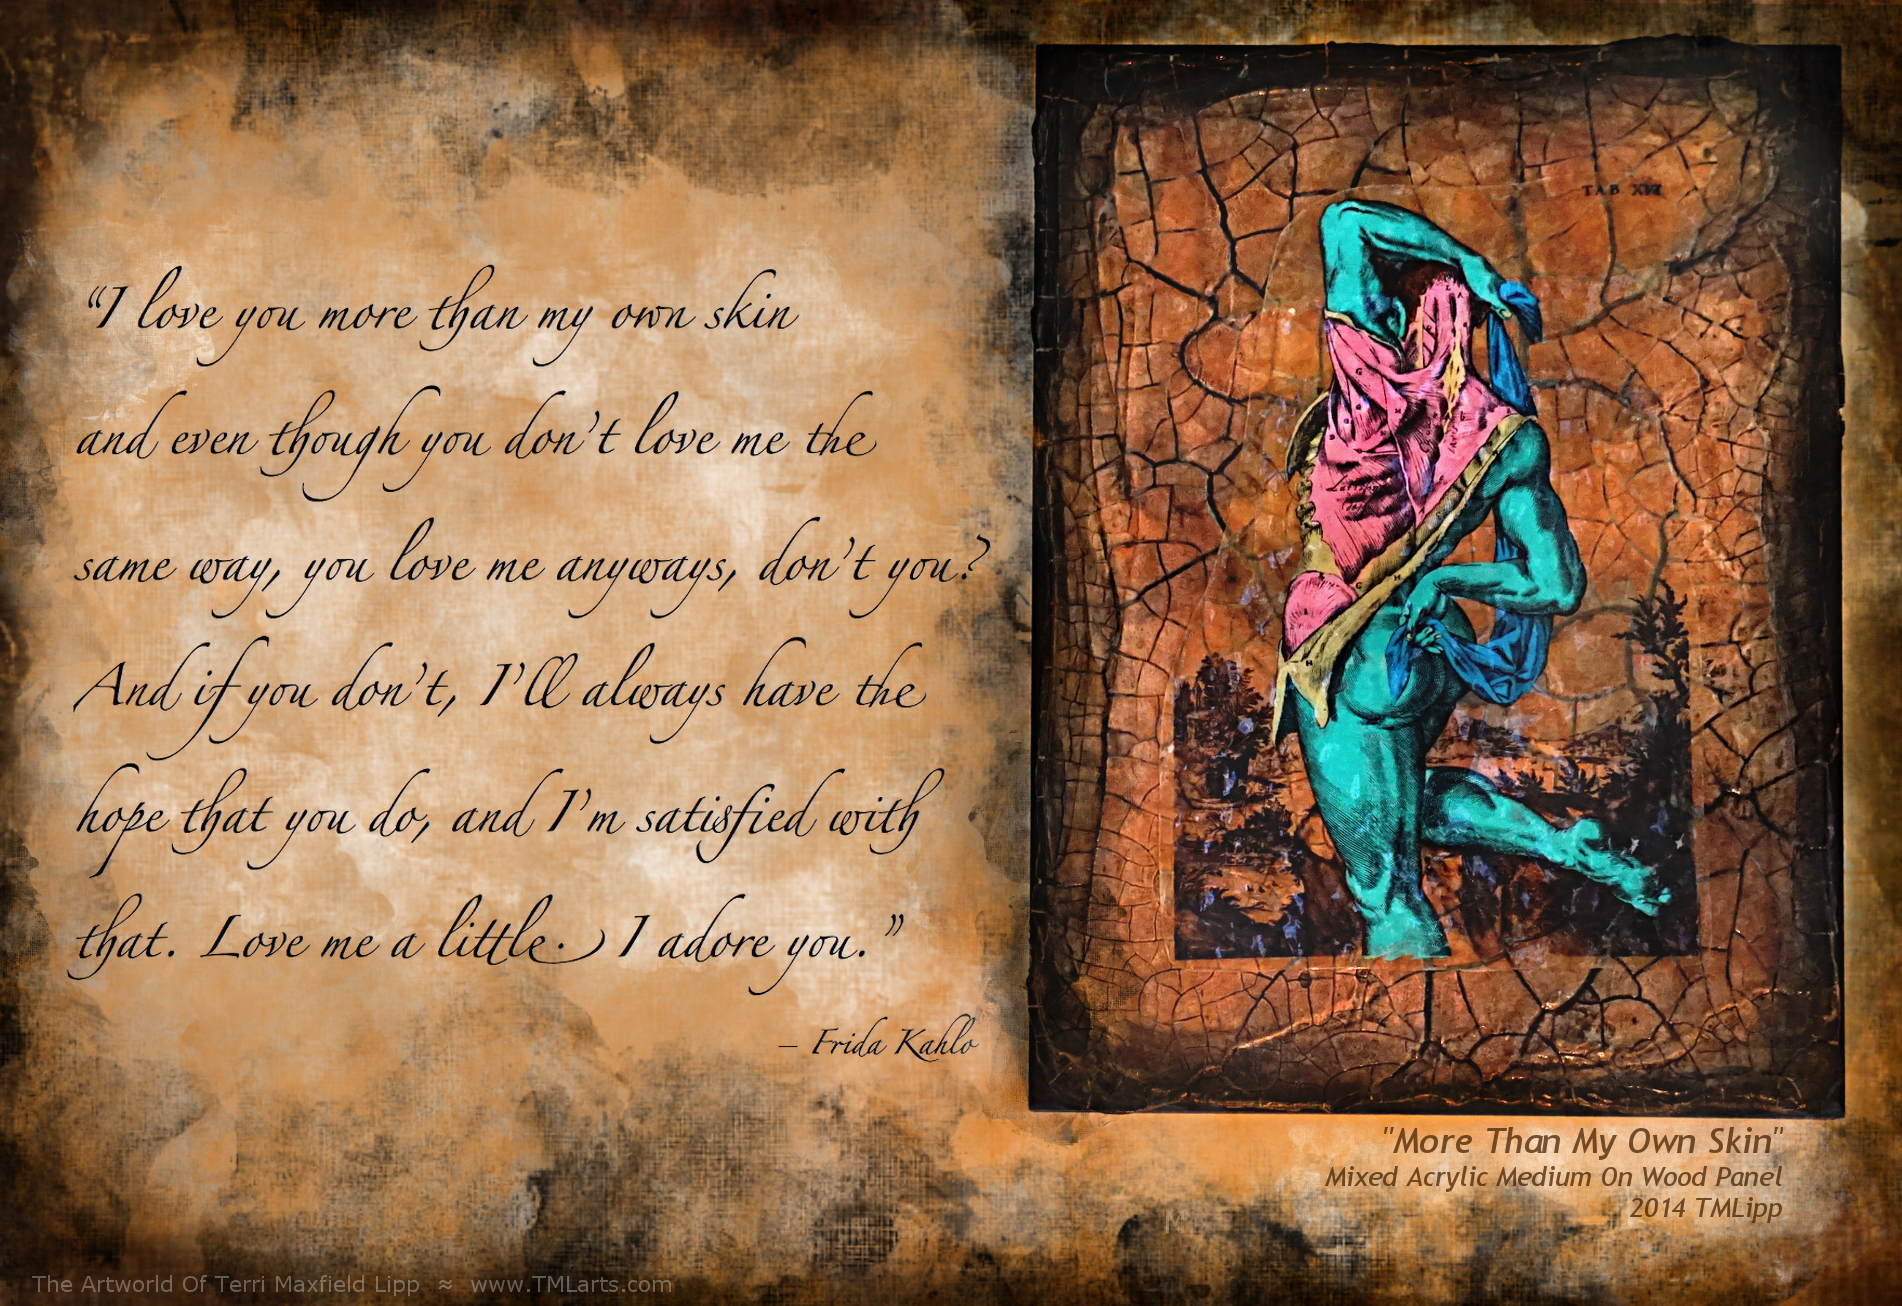 Artist Quote meme - quote by Frida Kahlo, Skelly-Gel art by TMLipp